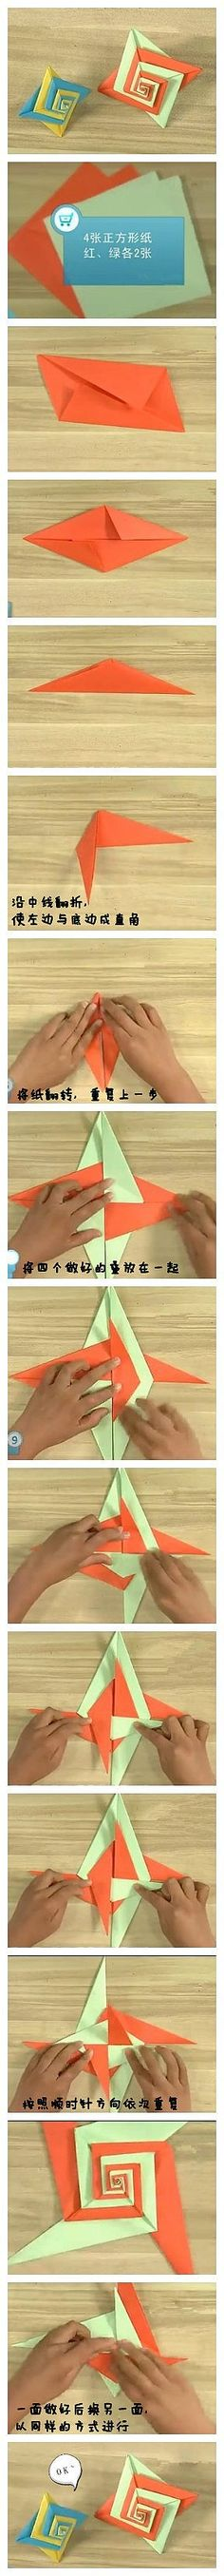 Origami Spiral Folding Instructions | Origami Instruction